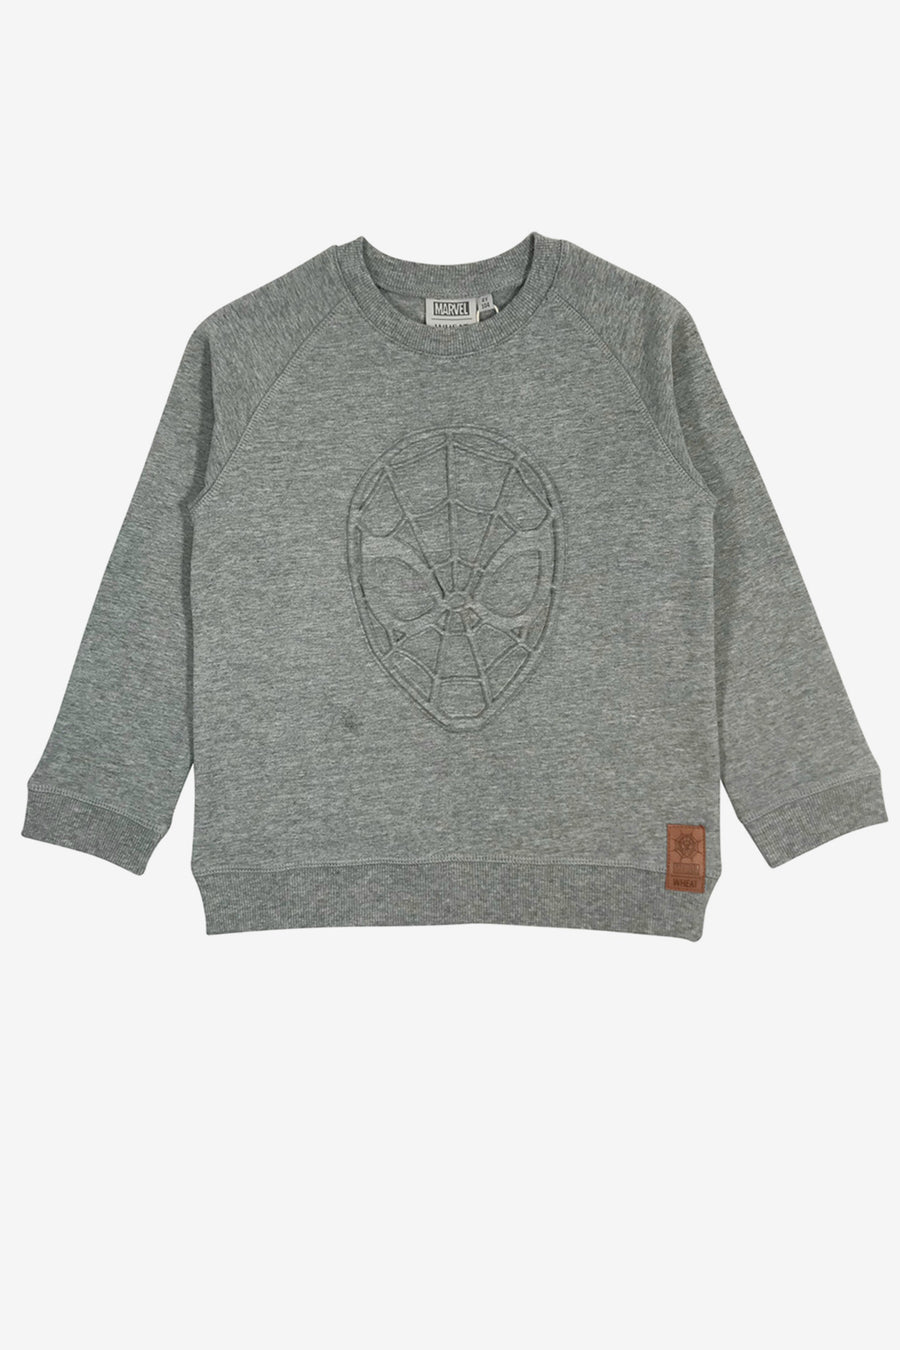 Wheat Spider Sweatshirt